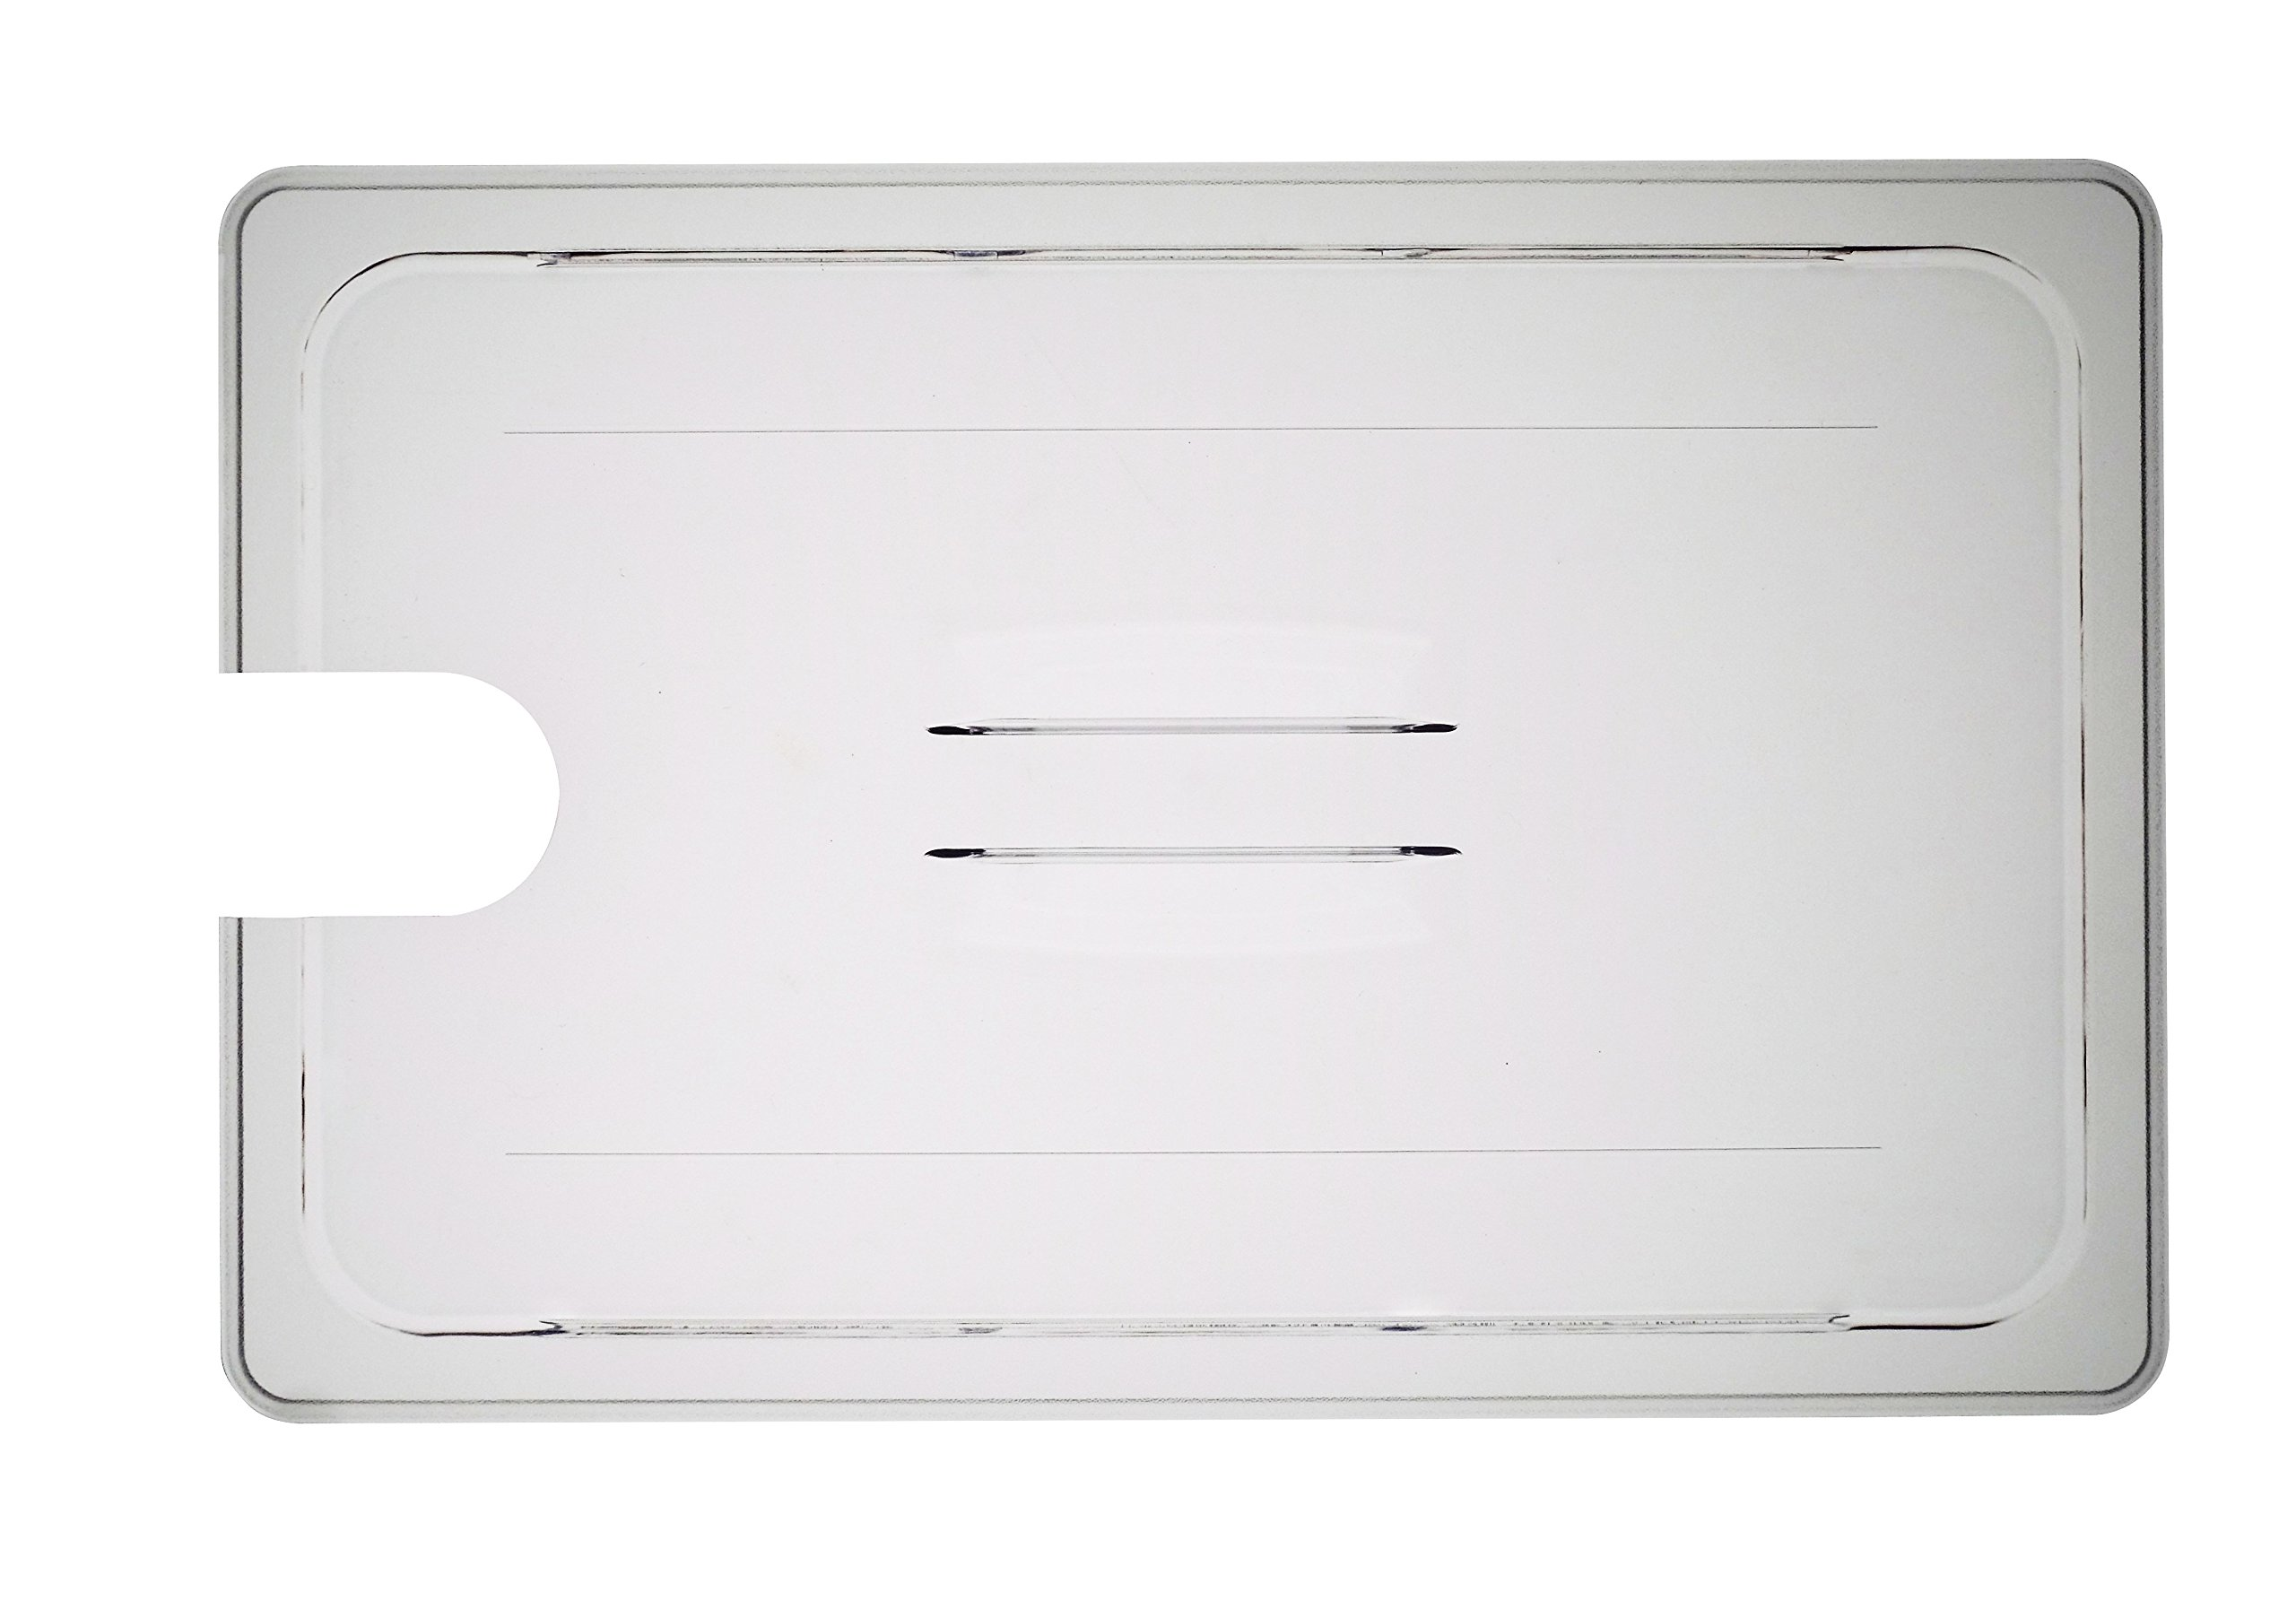 LIPAVI C15L-AN Lid for LIPAVI C15 Sous Vide Container, with precision cut-out for the ANOVA NANO immersion circulator